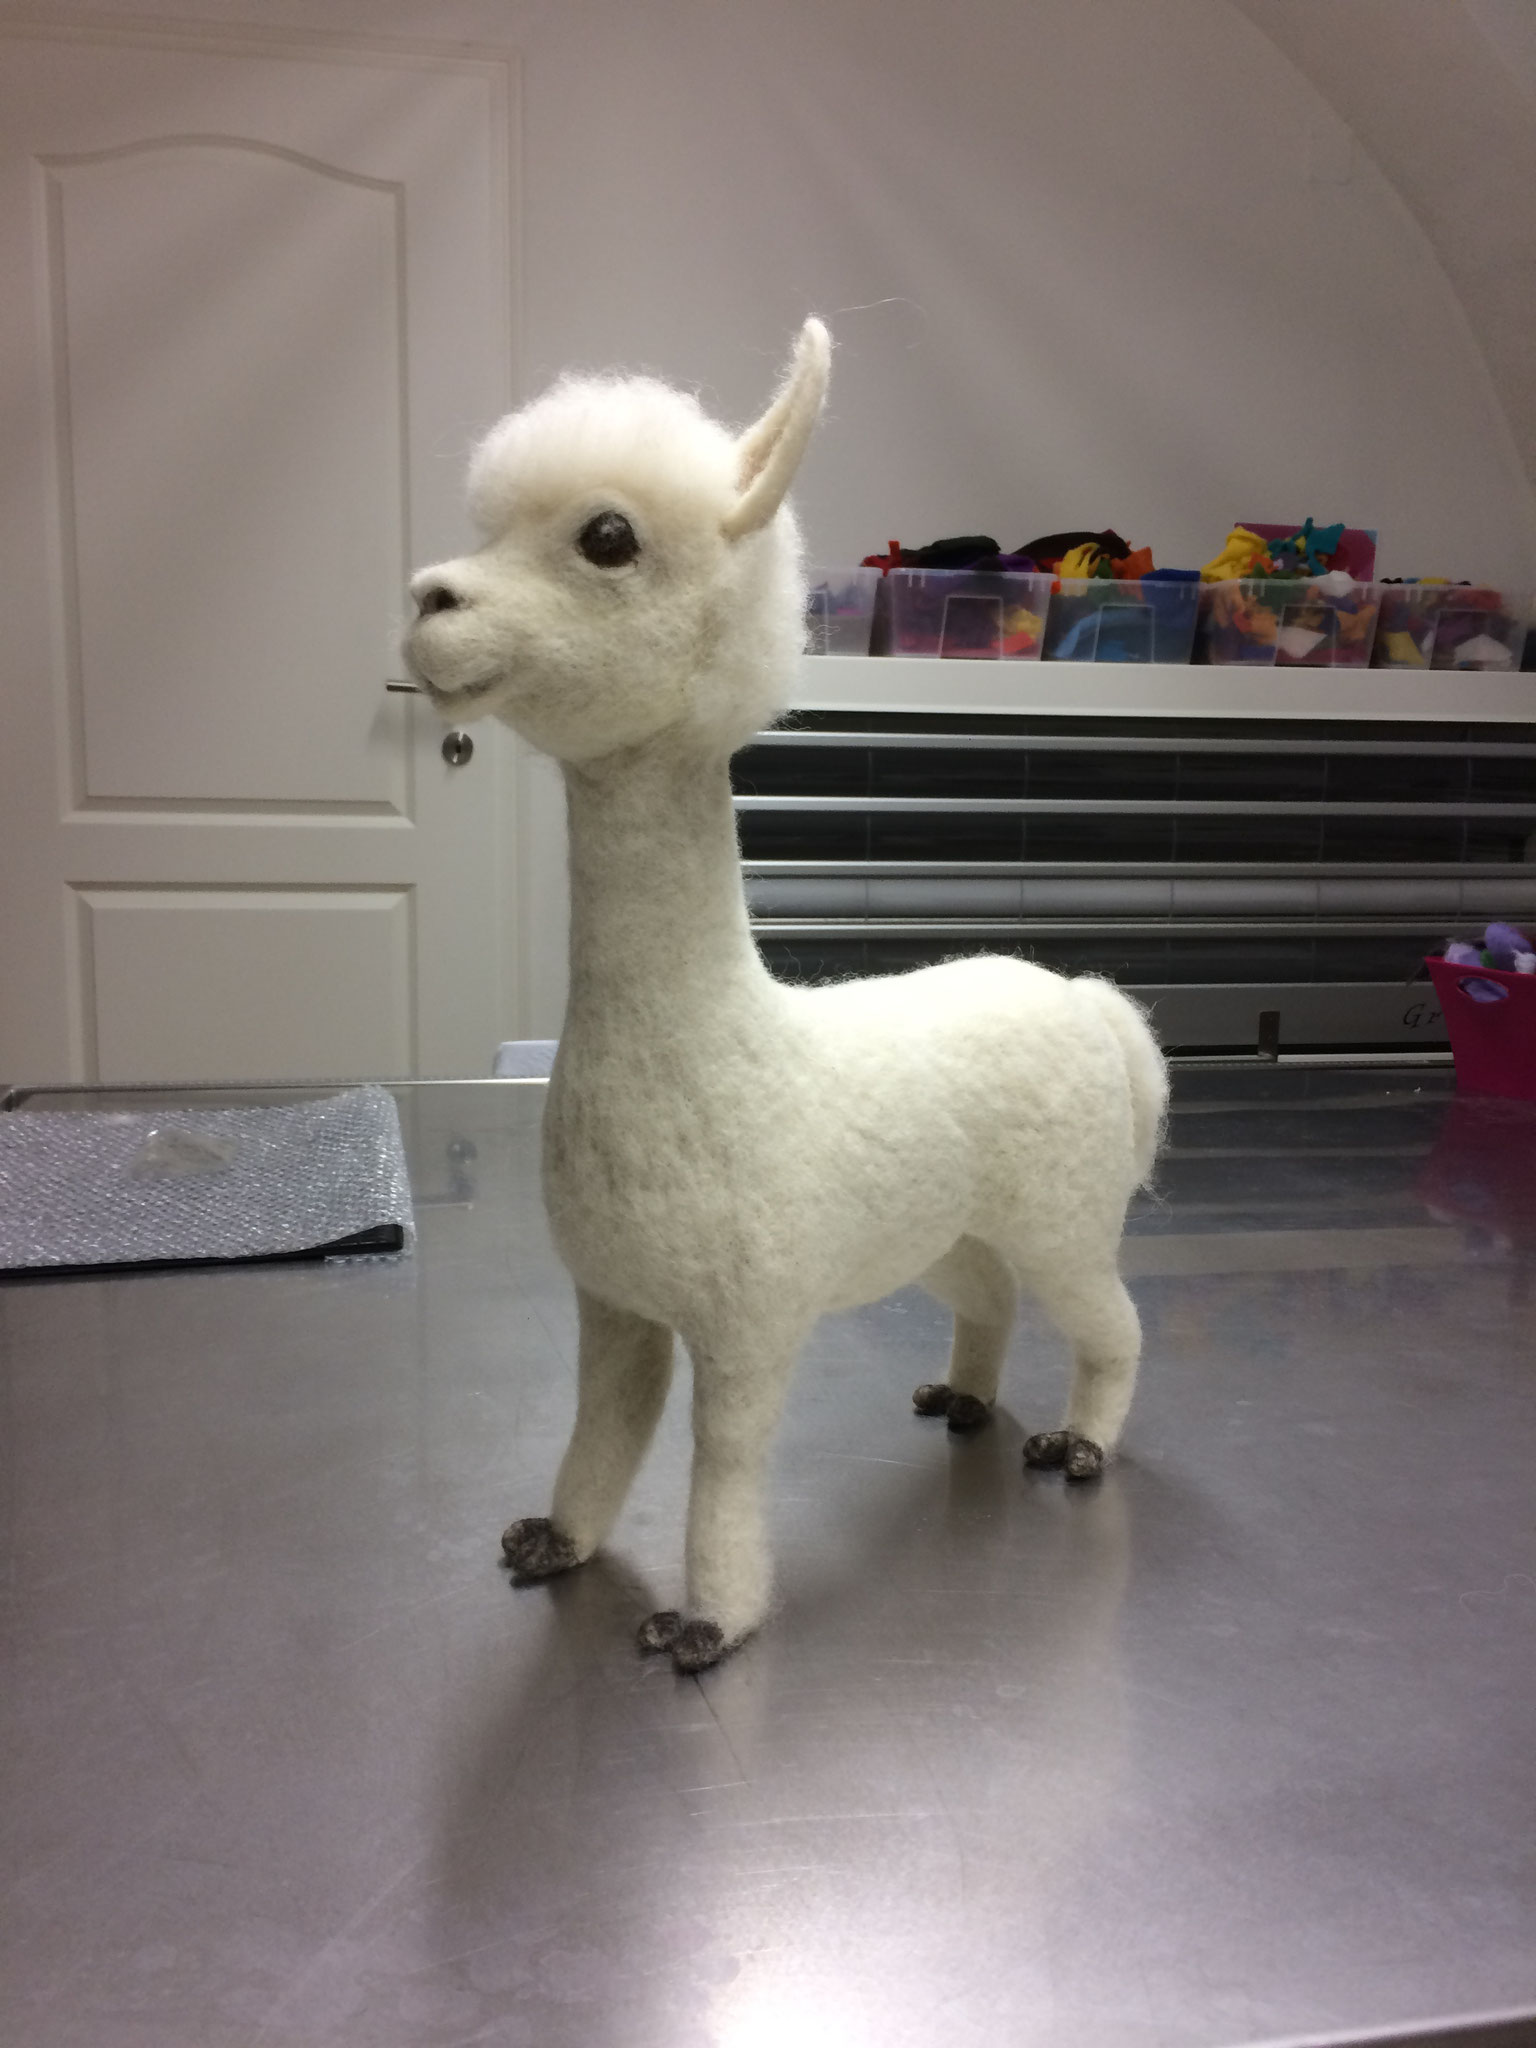 ConARTdesign by Connie Spiegl, Austria, Alpaca gefilzt